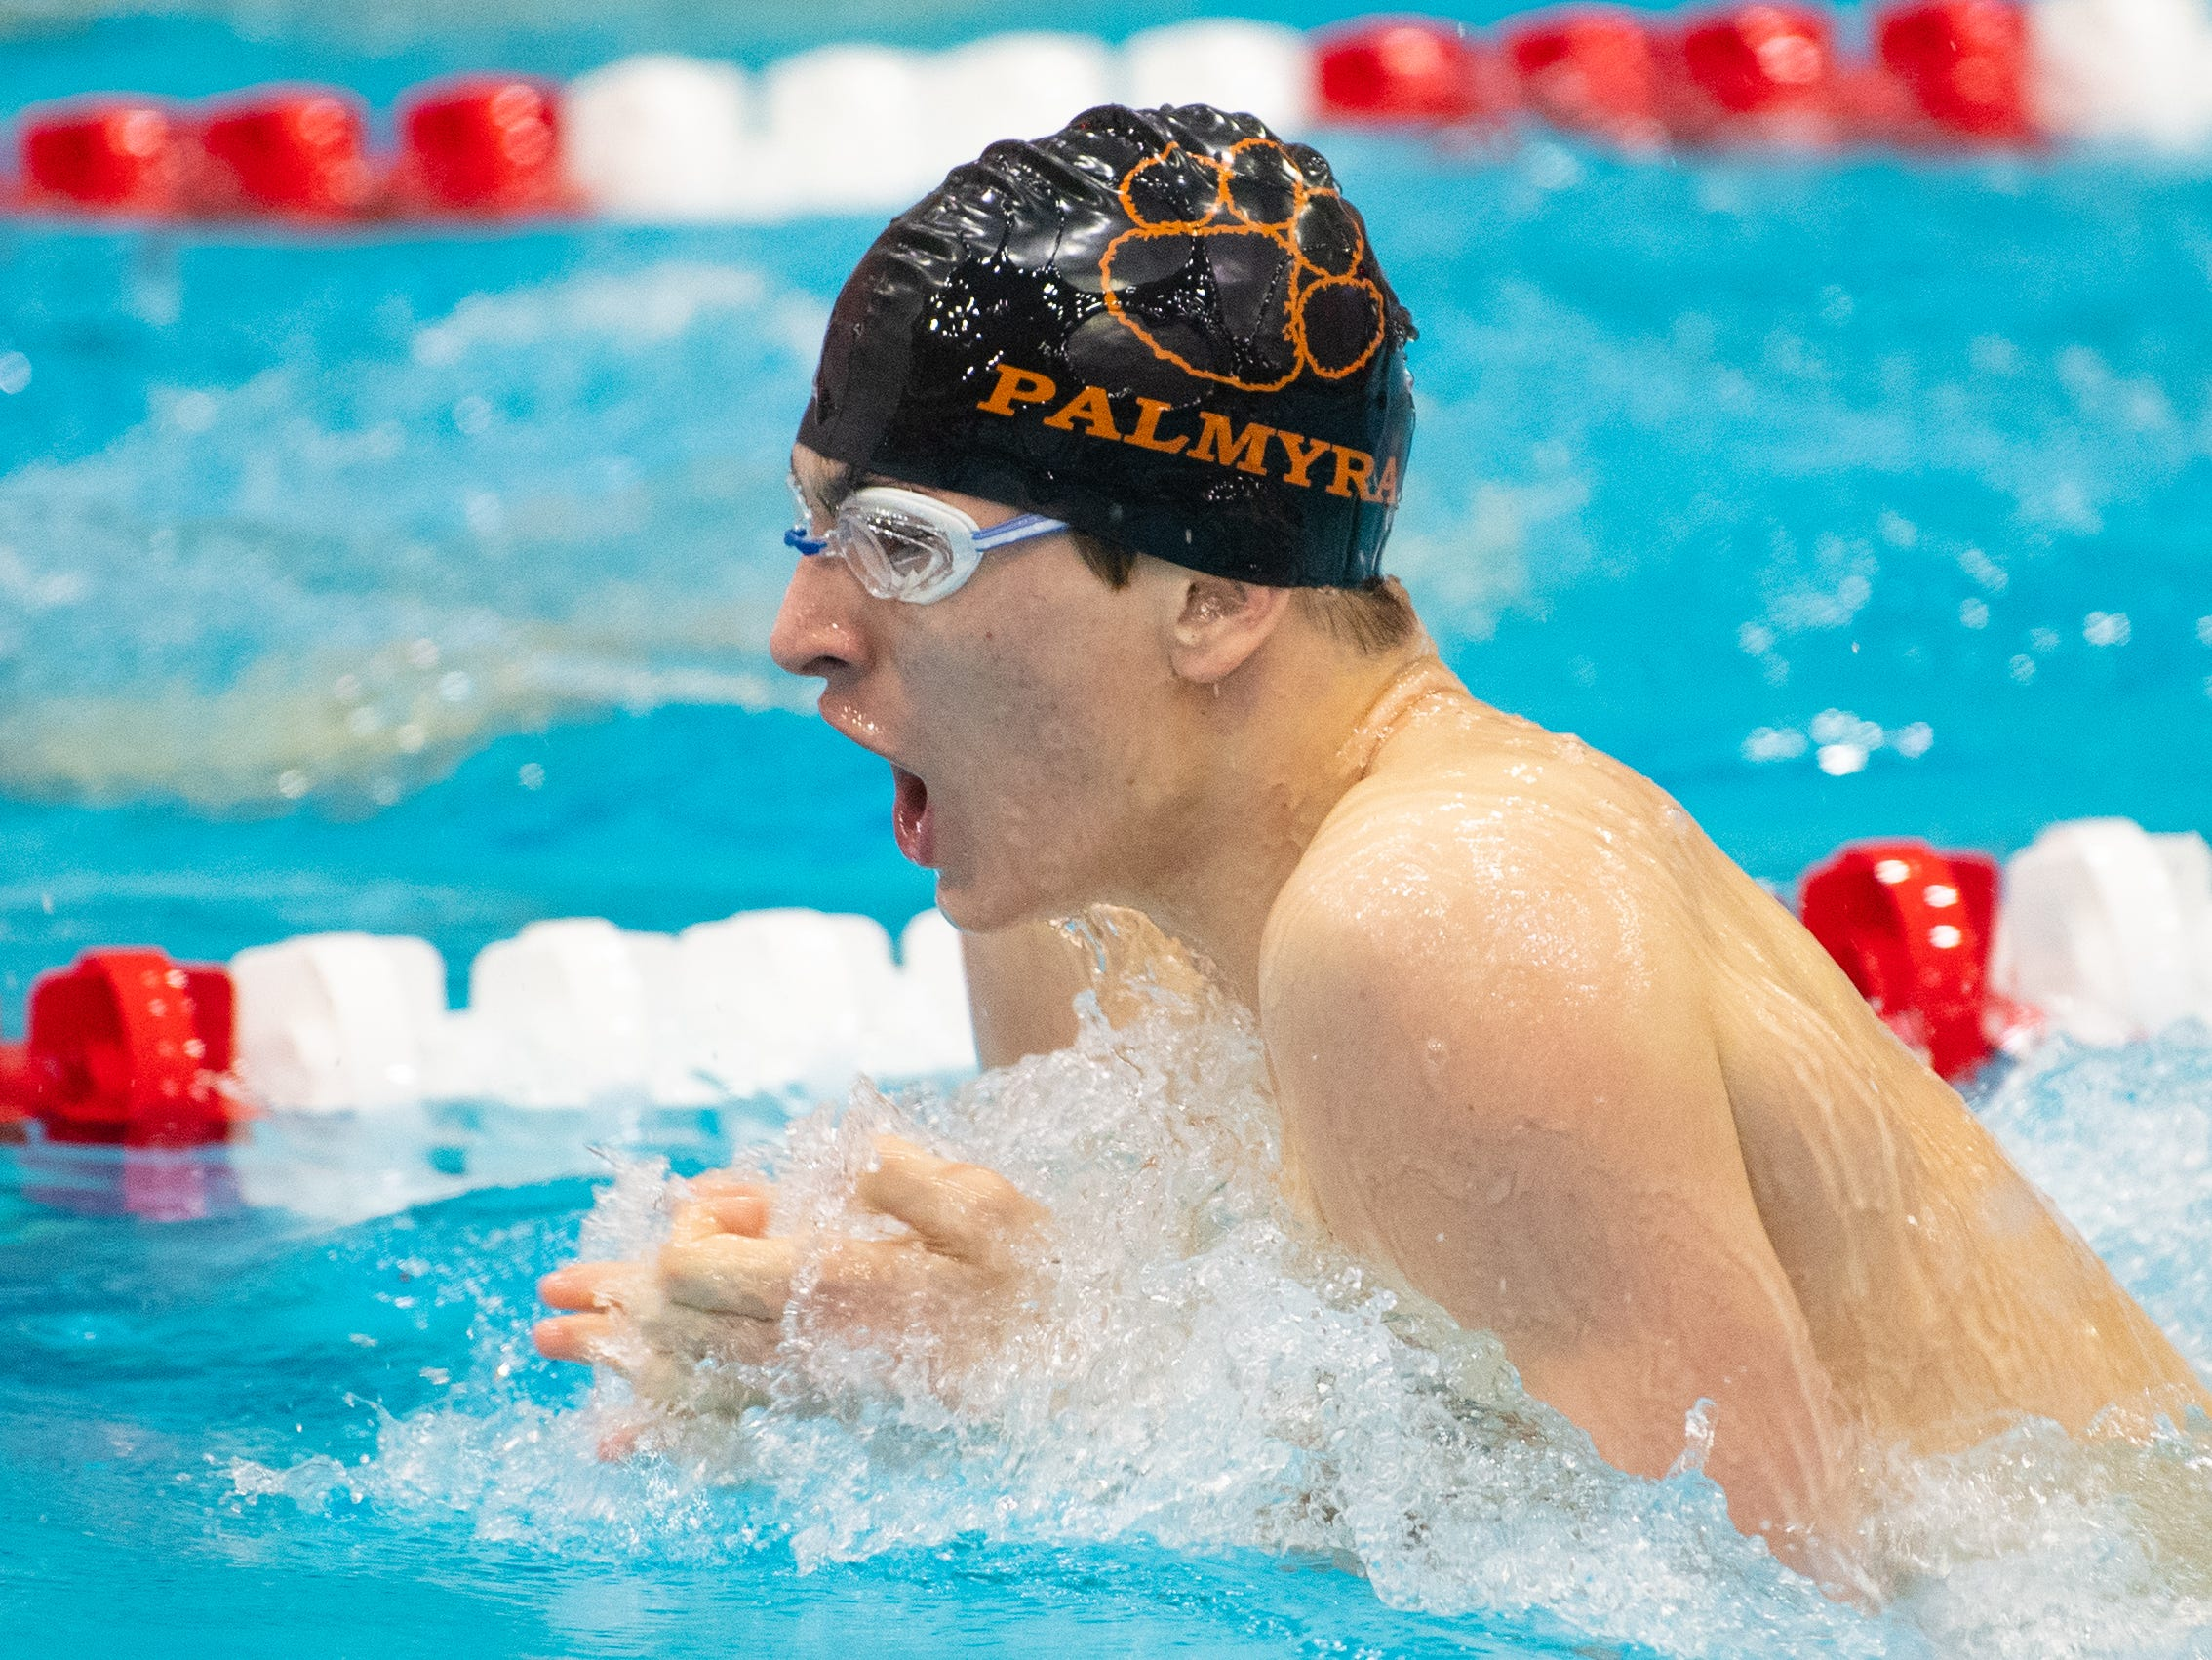 Austin Durand of Palmyra competes in the Boys 200 Yard IM during the PIAA District 3 Boys AAA Championship, March 1, 2019 at Cumberland Valley High School.